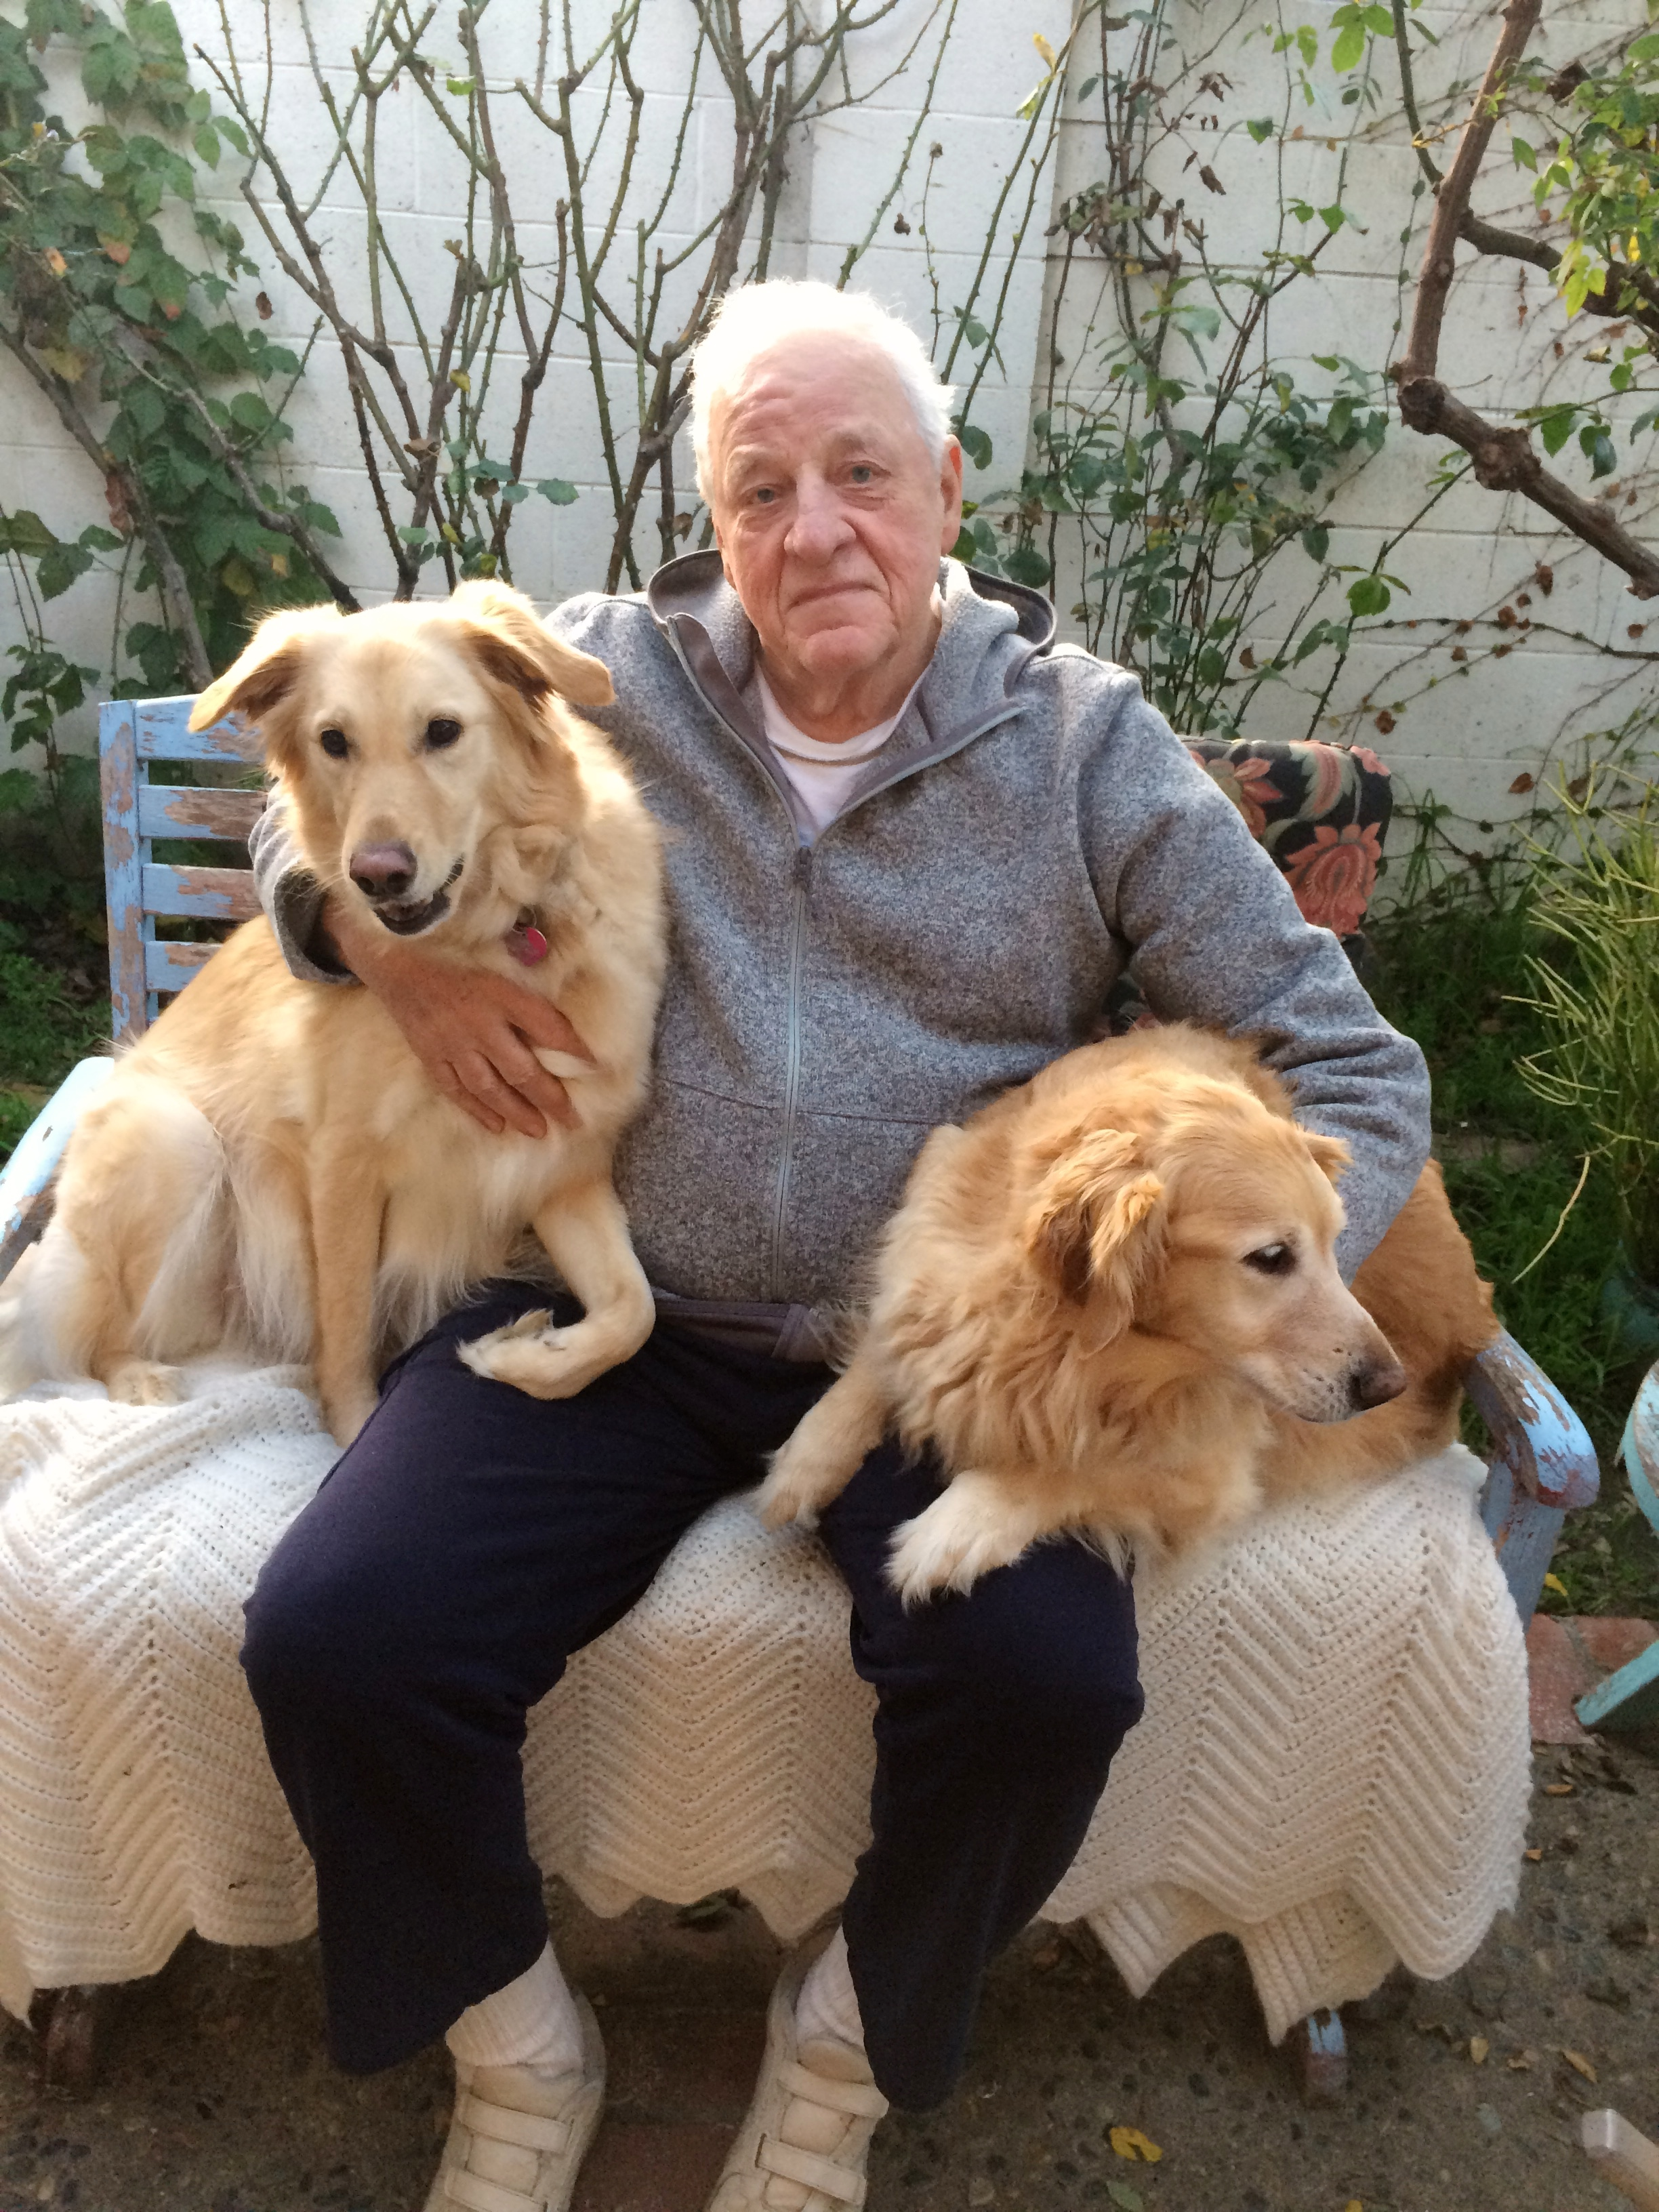 Here are three happy subscribers to Dog TV, With Heidi, left; Gypsy, right; I'm in the middle. (We are real dogs and people, not paid actors.)